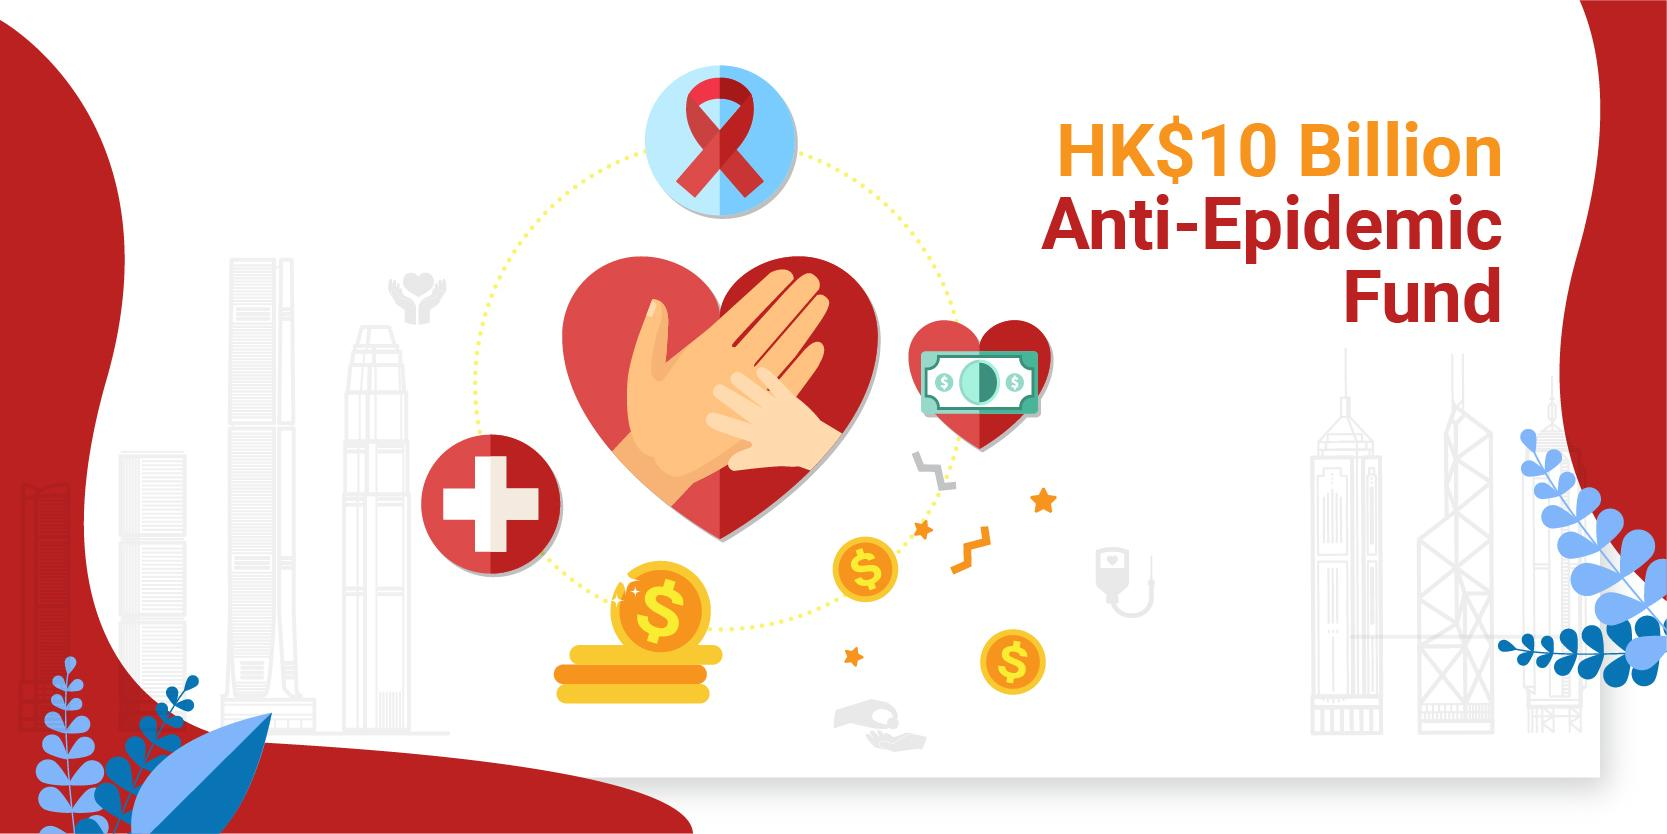 HK$10 Billion Anti-Epidemic Fund